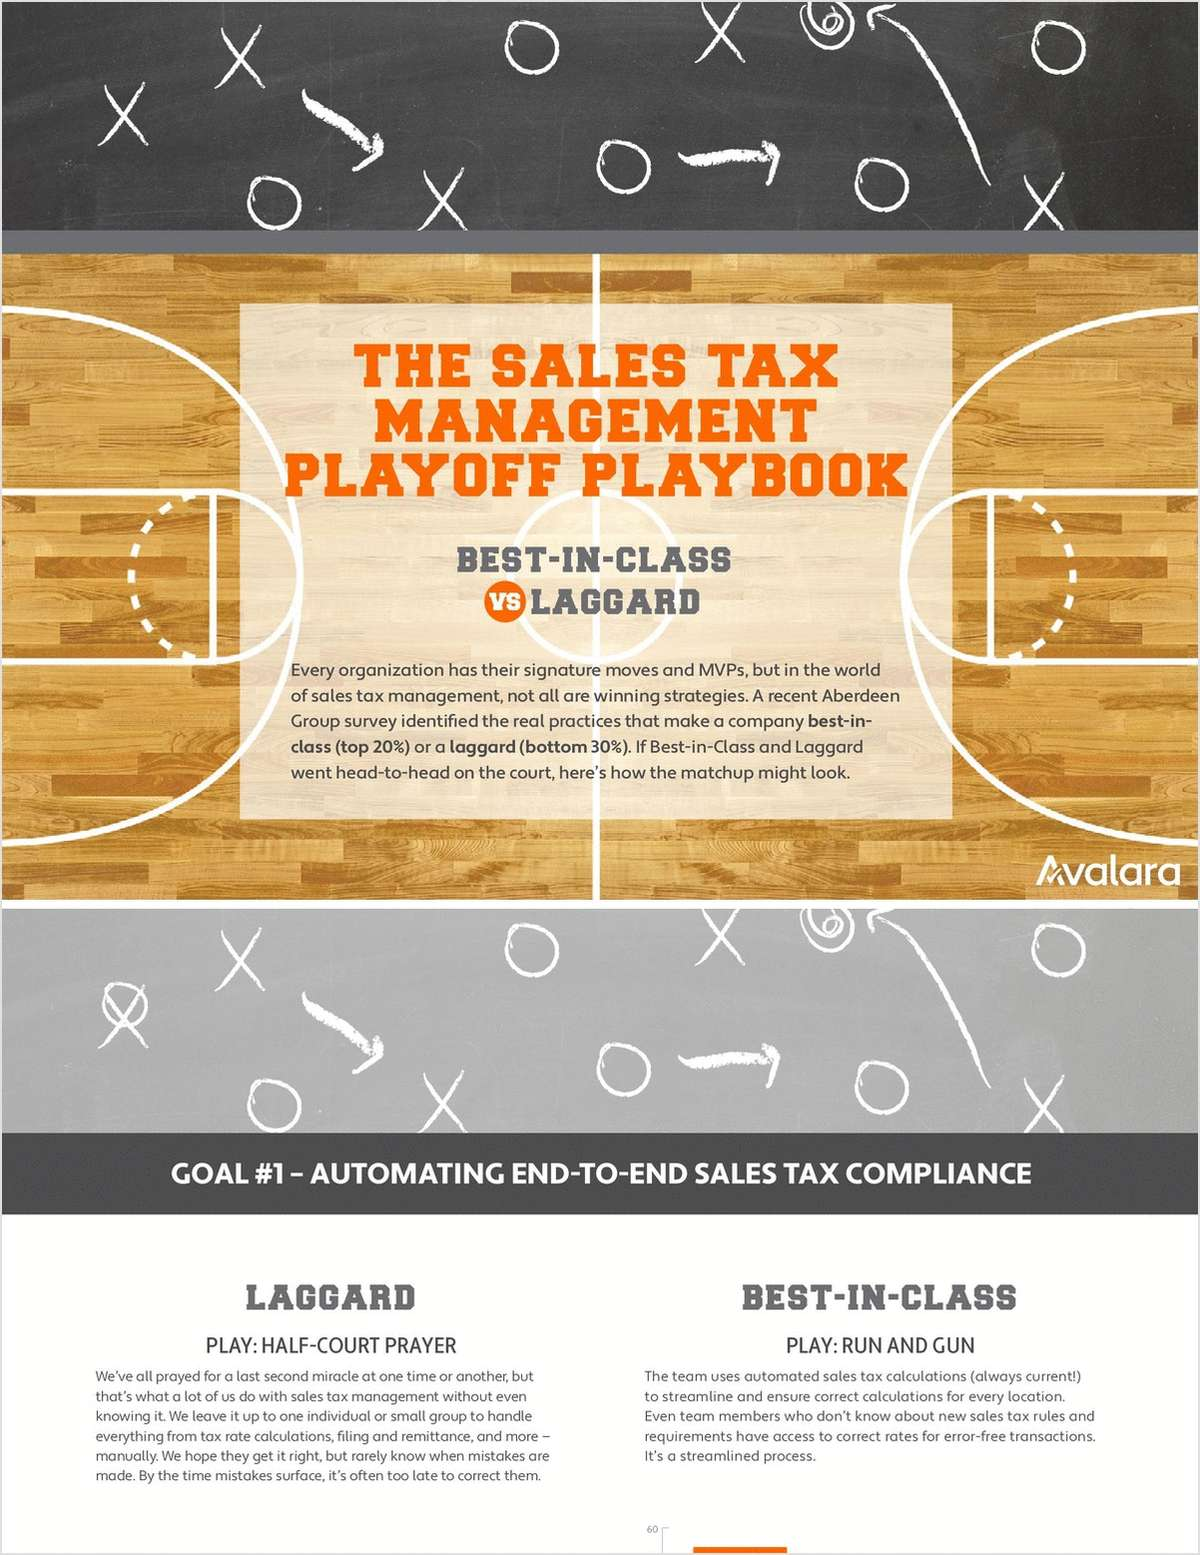 Top Companies Breeze Through Sales Tax Audits.  Get the Sales Tax Management Playoff Playbook And See Why.